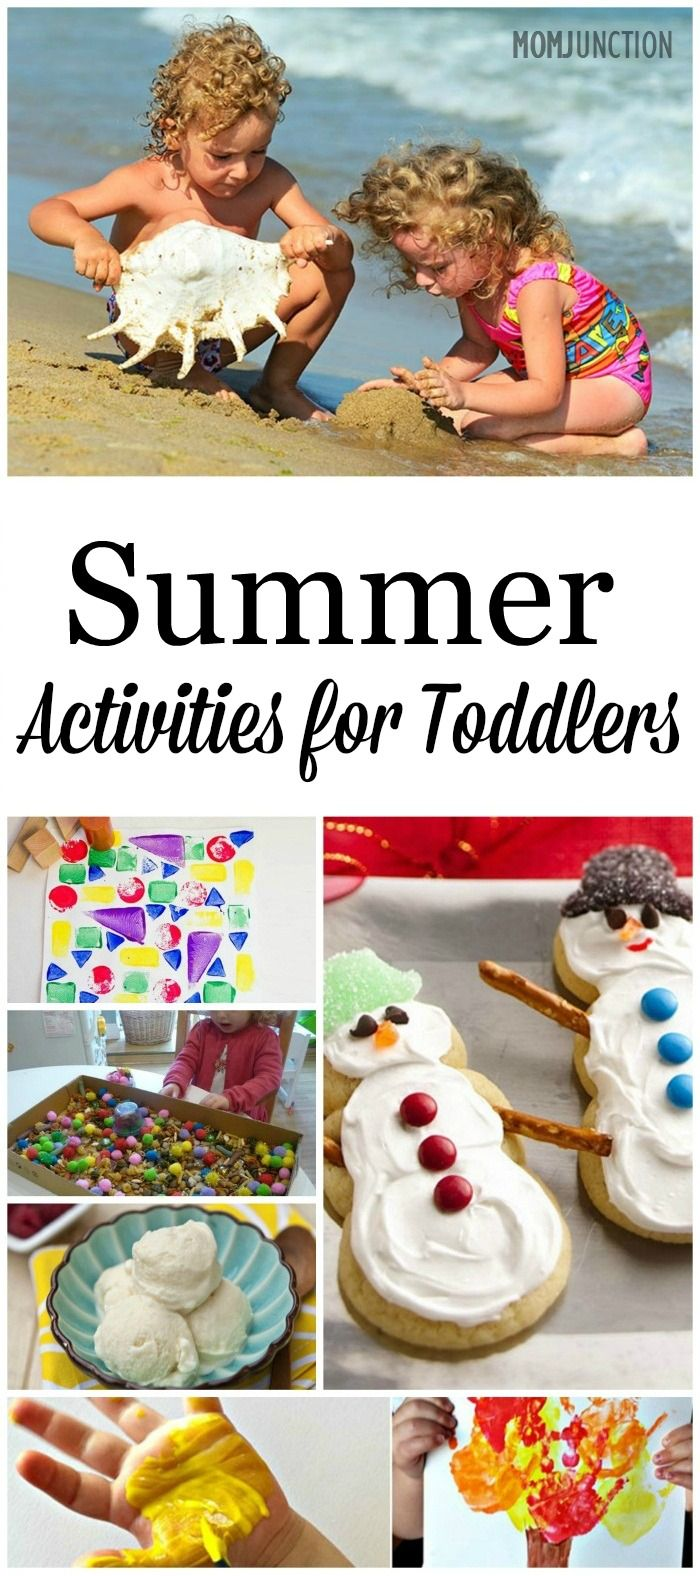 Fun Summer Activities For Toddlers: spending time with toddlers helps with better cognitive development for them. Let's look at 10 interesting summer activities for toddlers.